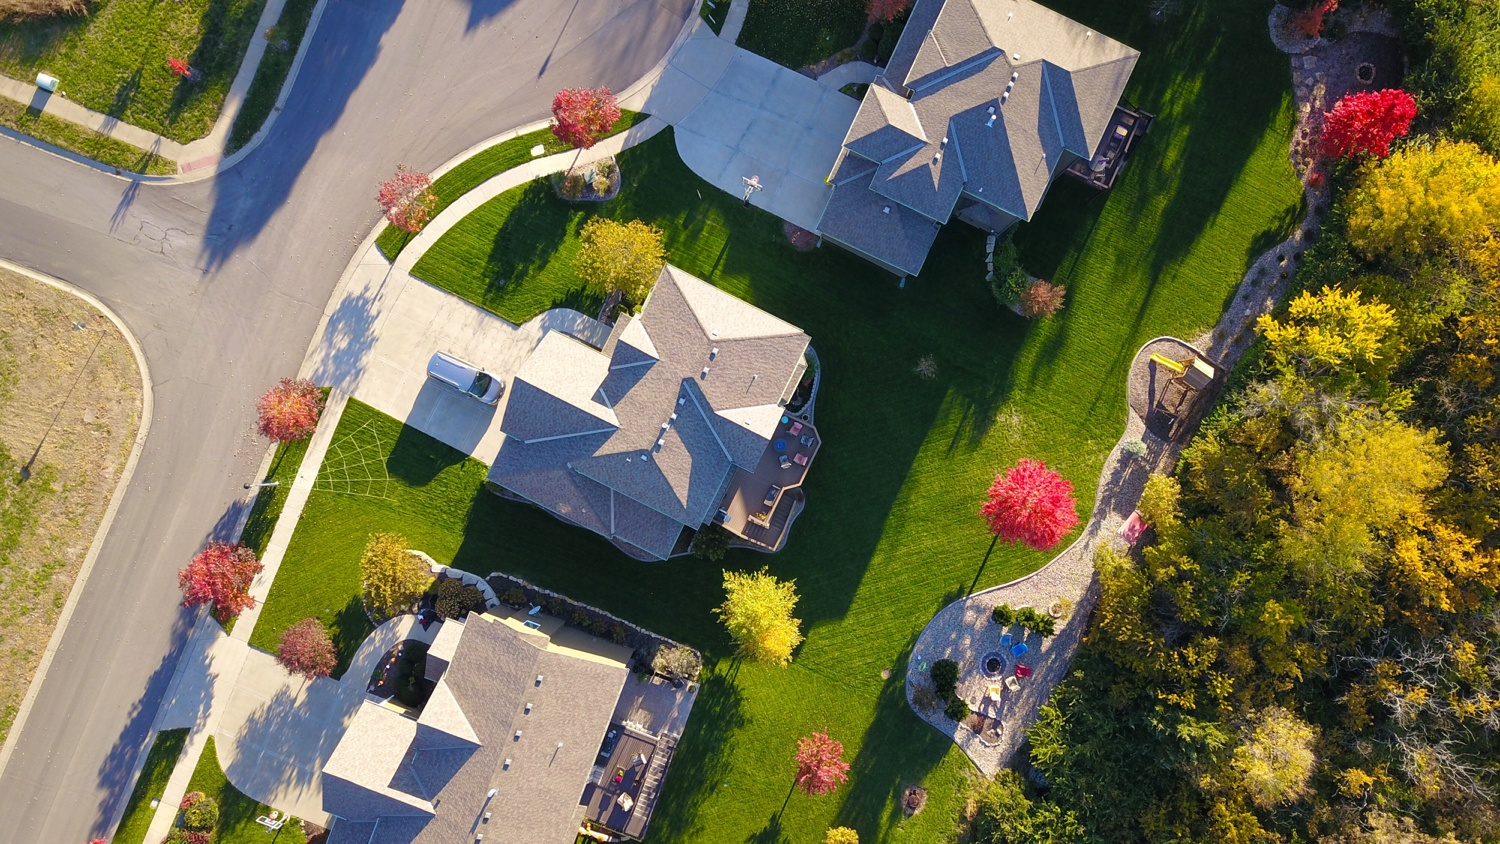 An aerial view of a home that is being maintained.